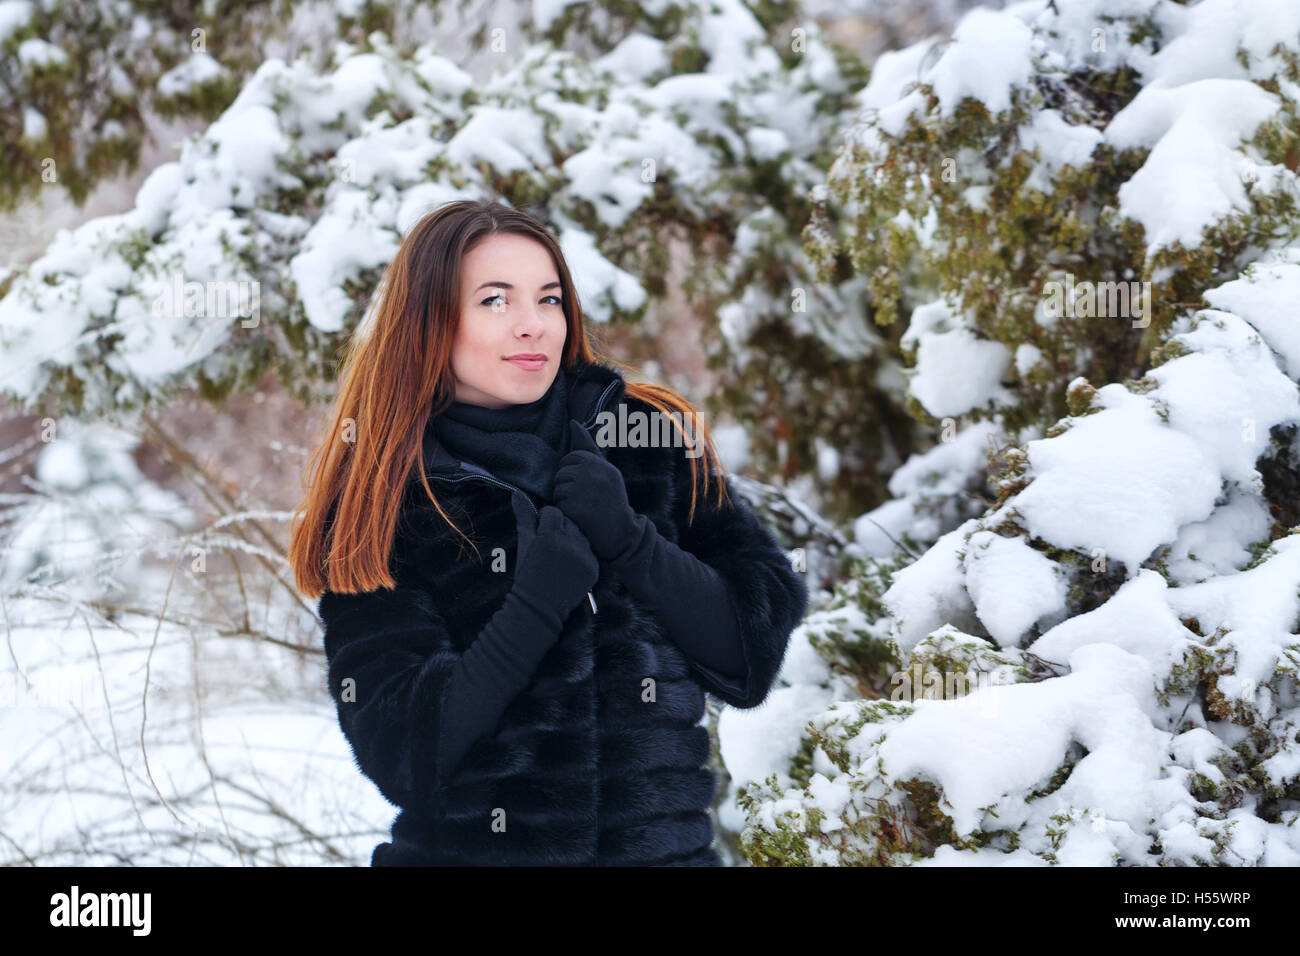 Sweet attractive girl in a fur coat and gloves in the winter park